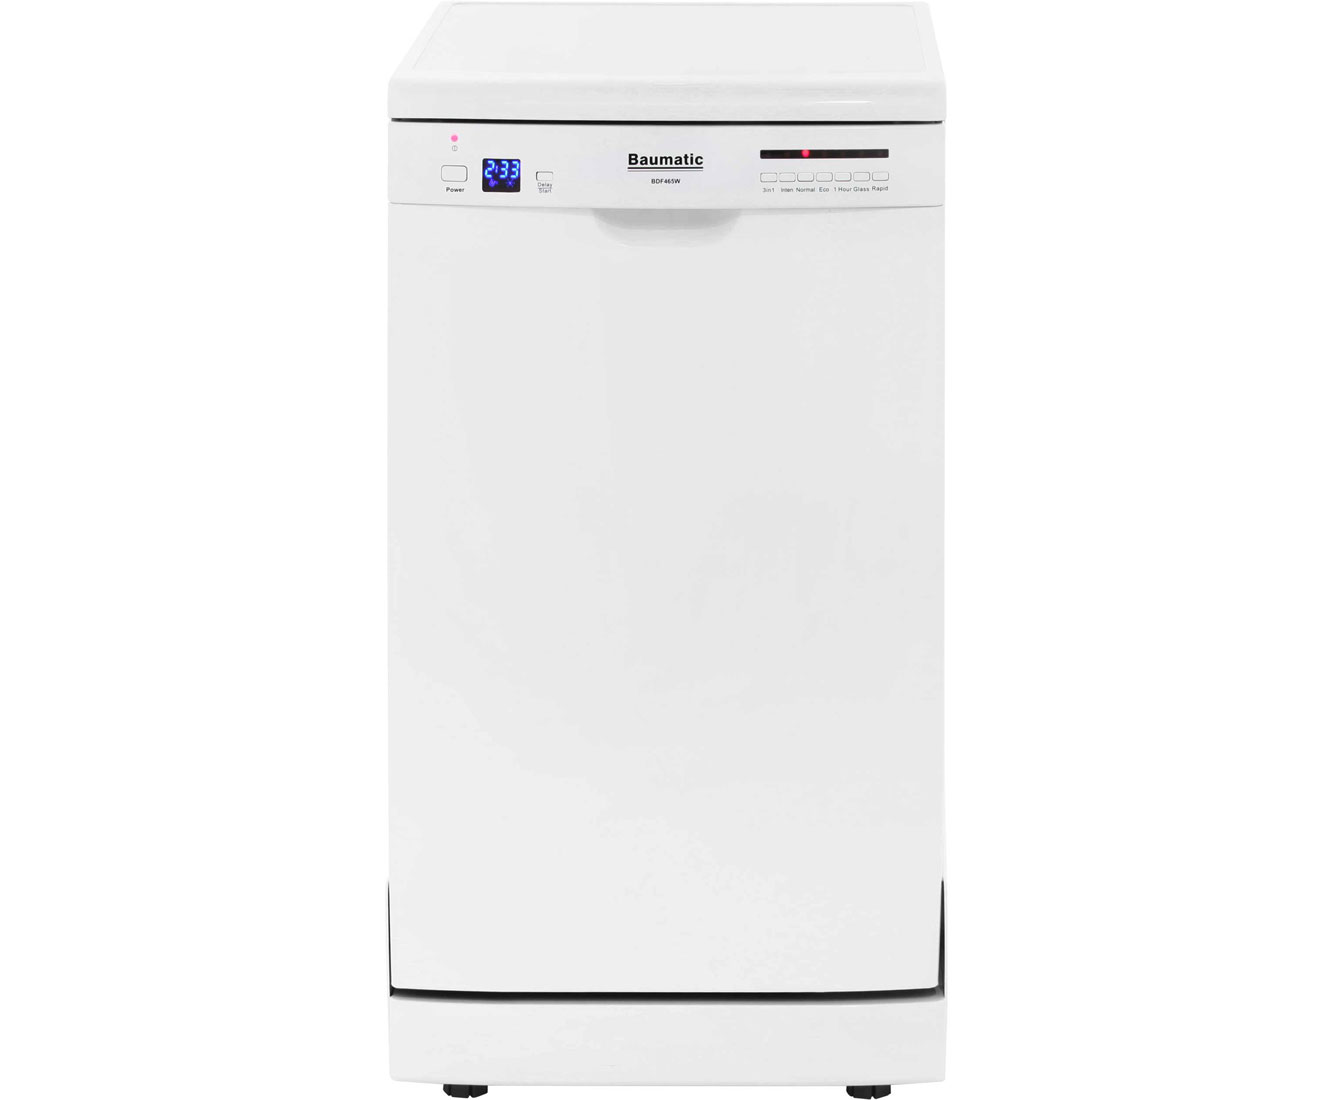 Baumatic BDF465W Free Standing Slimline Dishwasher in White